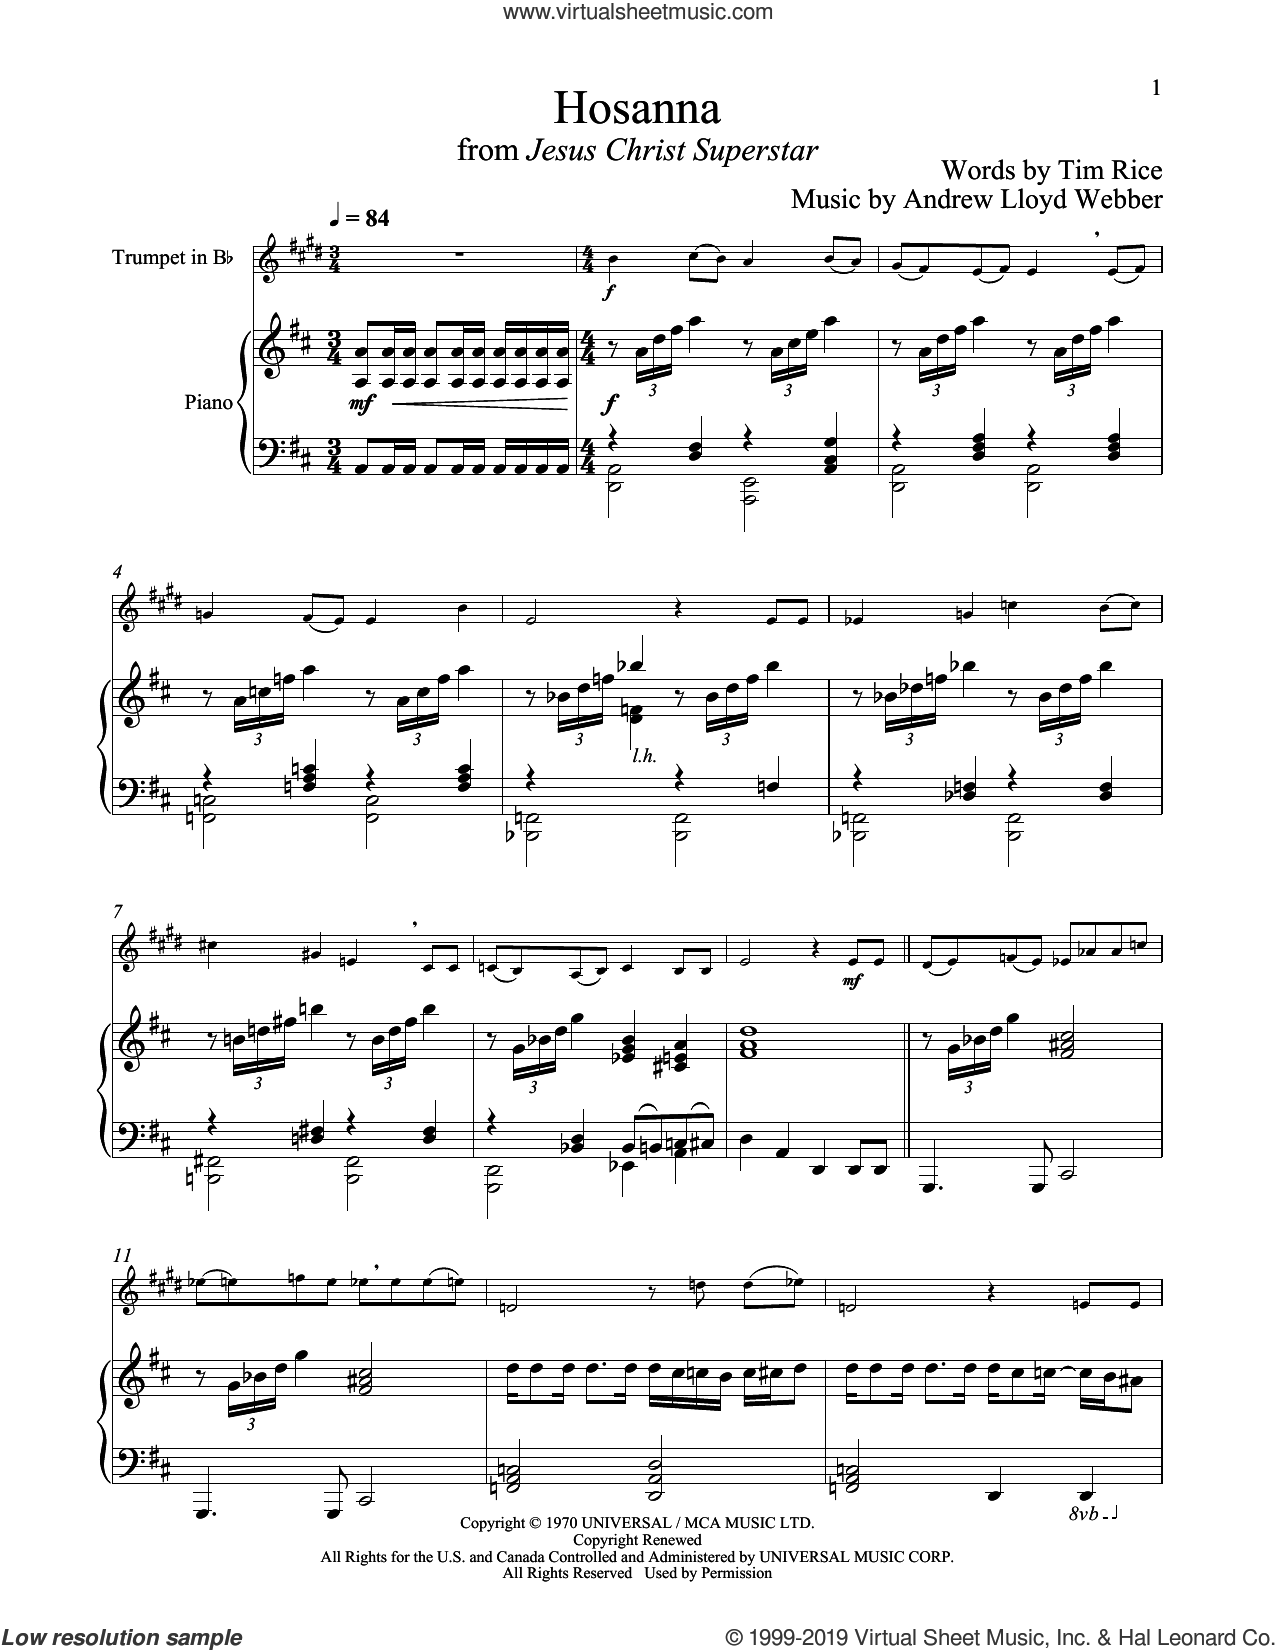 Hosanna (from Jesus Christ Superstar) sheet music for trumpet and piano by Andrew Lloyd Webber and Tim Rice, intermediate skill level